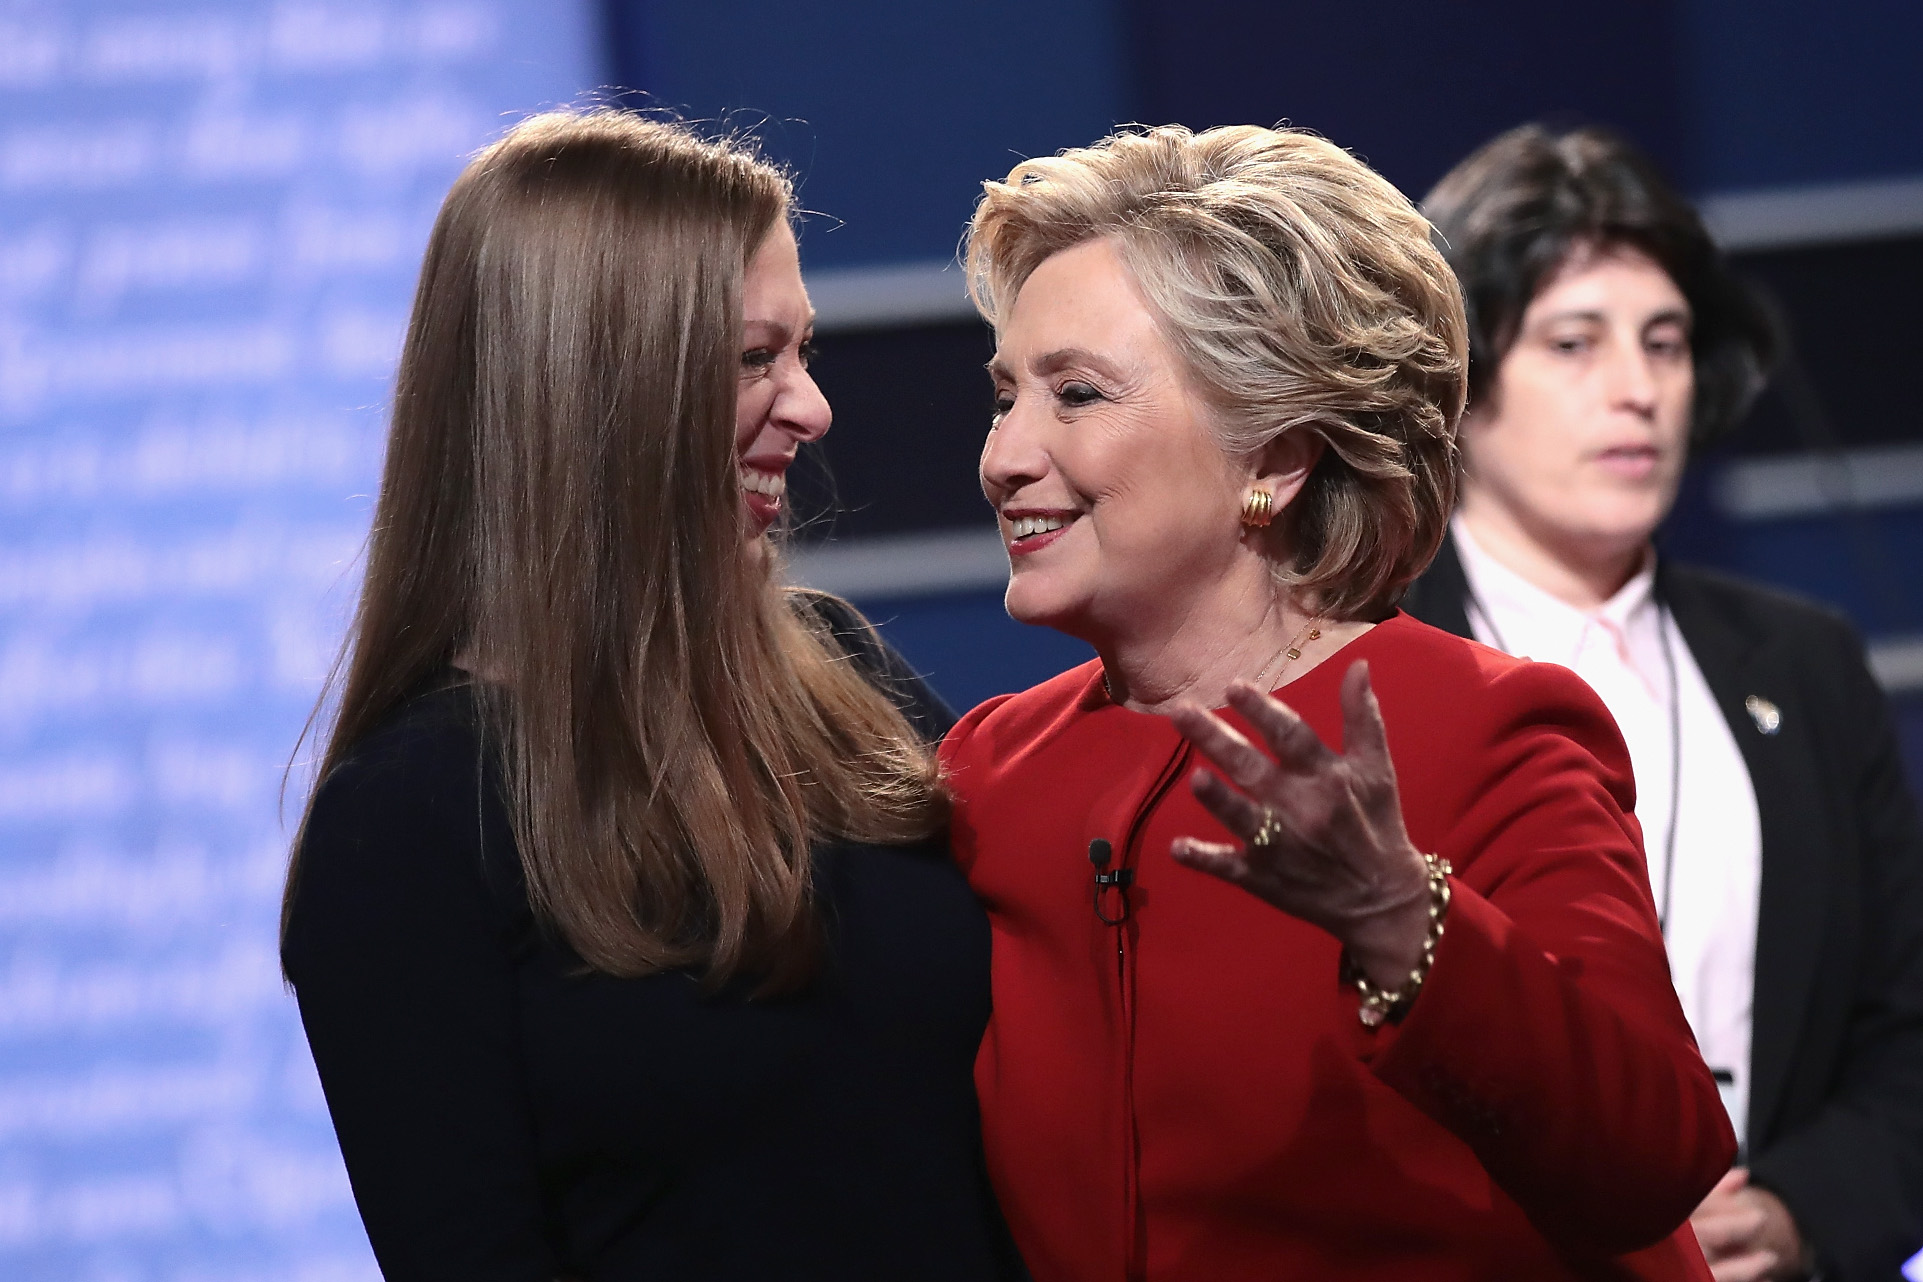 Democratic presidential nominee Hillary Clinton (R) talks with daughter, Chelsea Clinton (L) after the Presidential Debate with Republican presidential nominee Donald Trump at Hofstra University on September 26, 2016 in Hempstead, New York. The first of four debates for the 2016 Election, three Presidential and one Vice Presidential, is moderated by NBC's Lester Holt. (Photo by Drew Angerer/Getty Images)